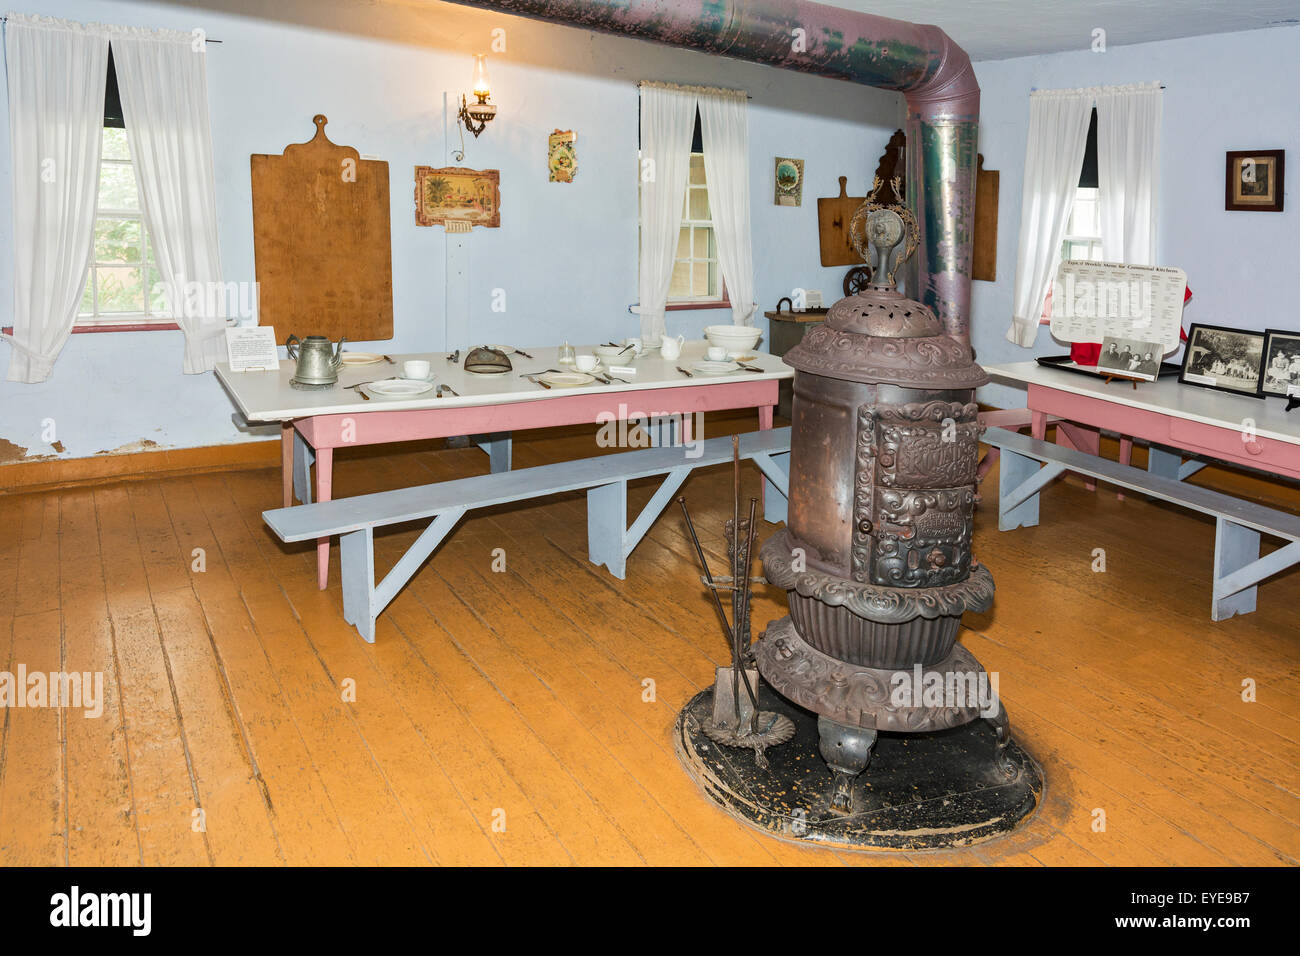 Iowa, Amana Colonies, Middle Amana, Communal Kitchen, operated 1863-1932, preserved circa 1932 - Stock Image